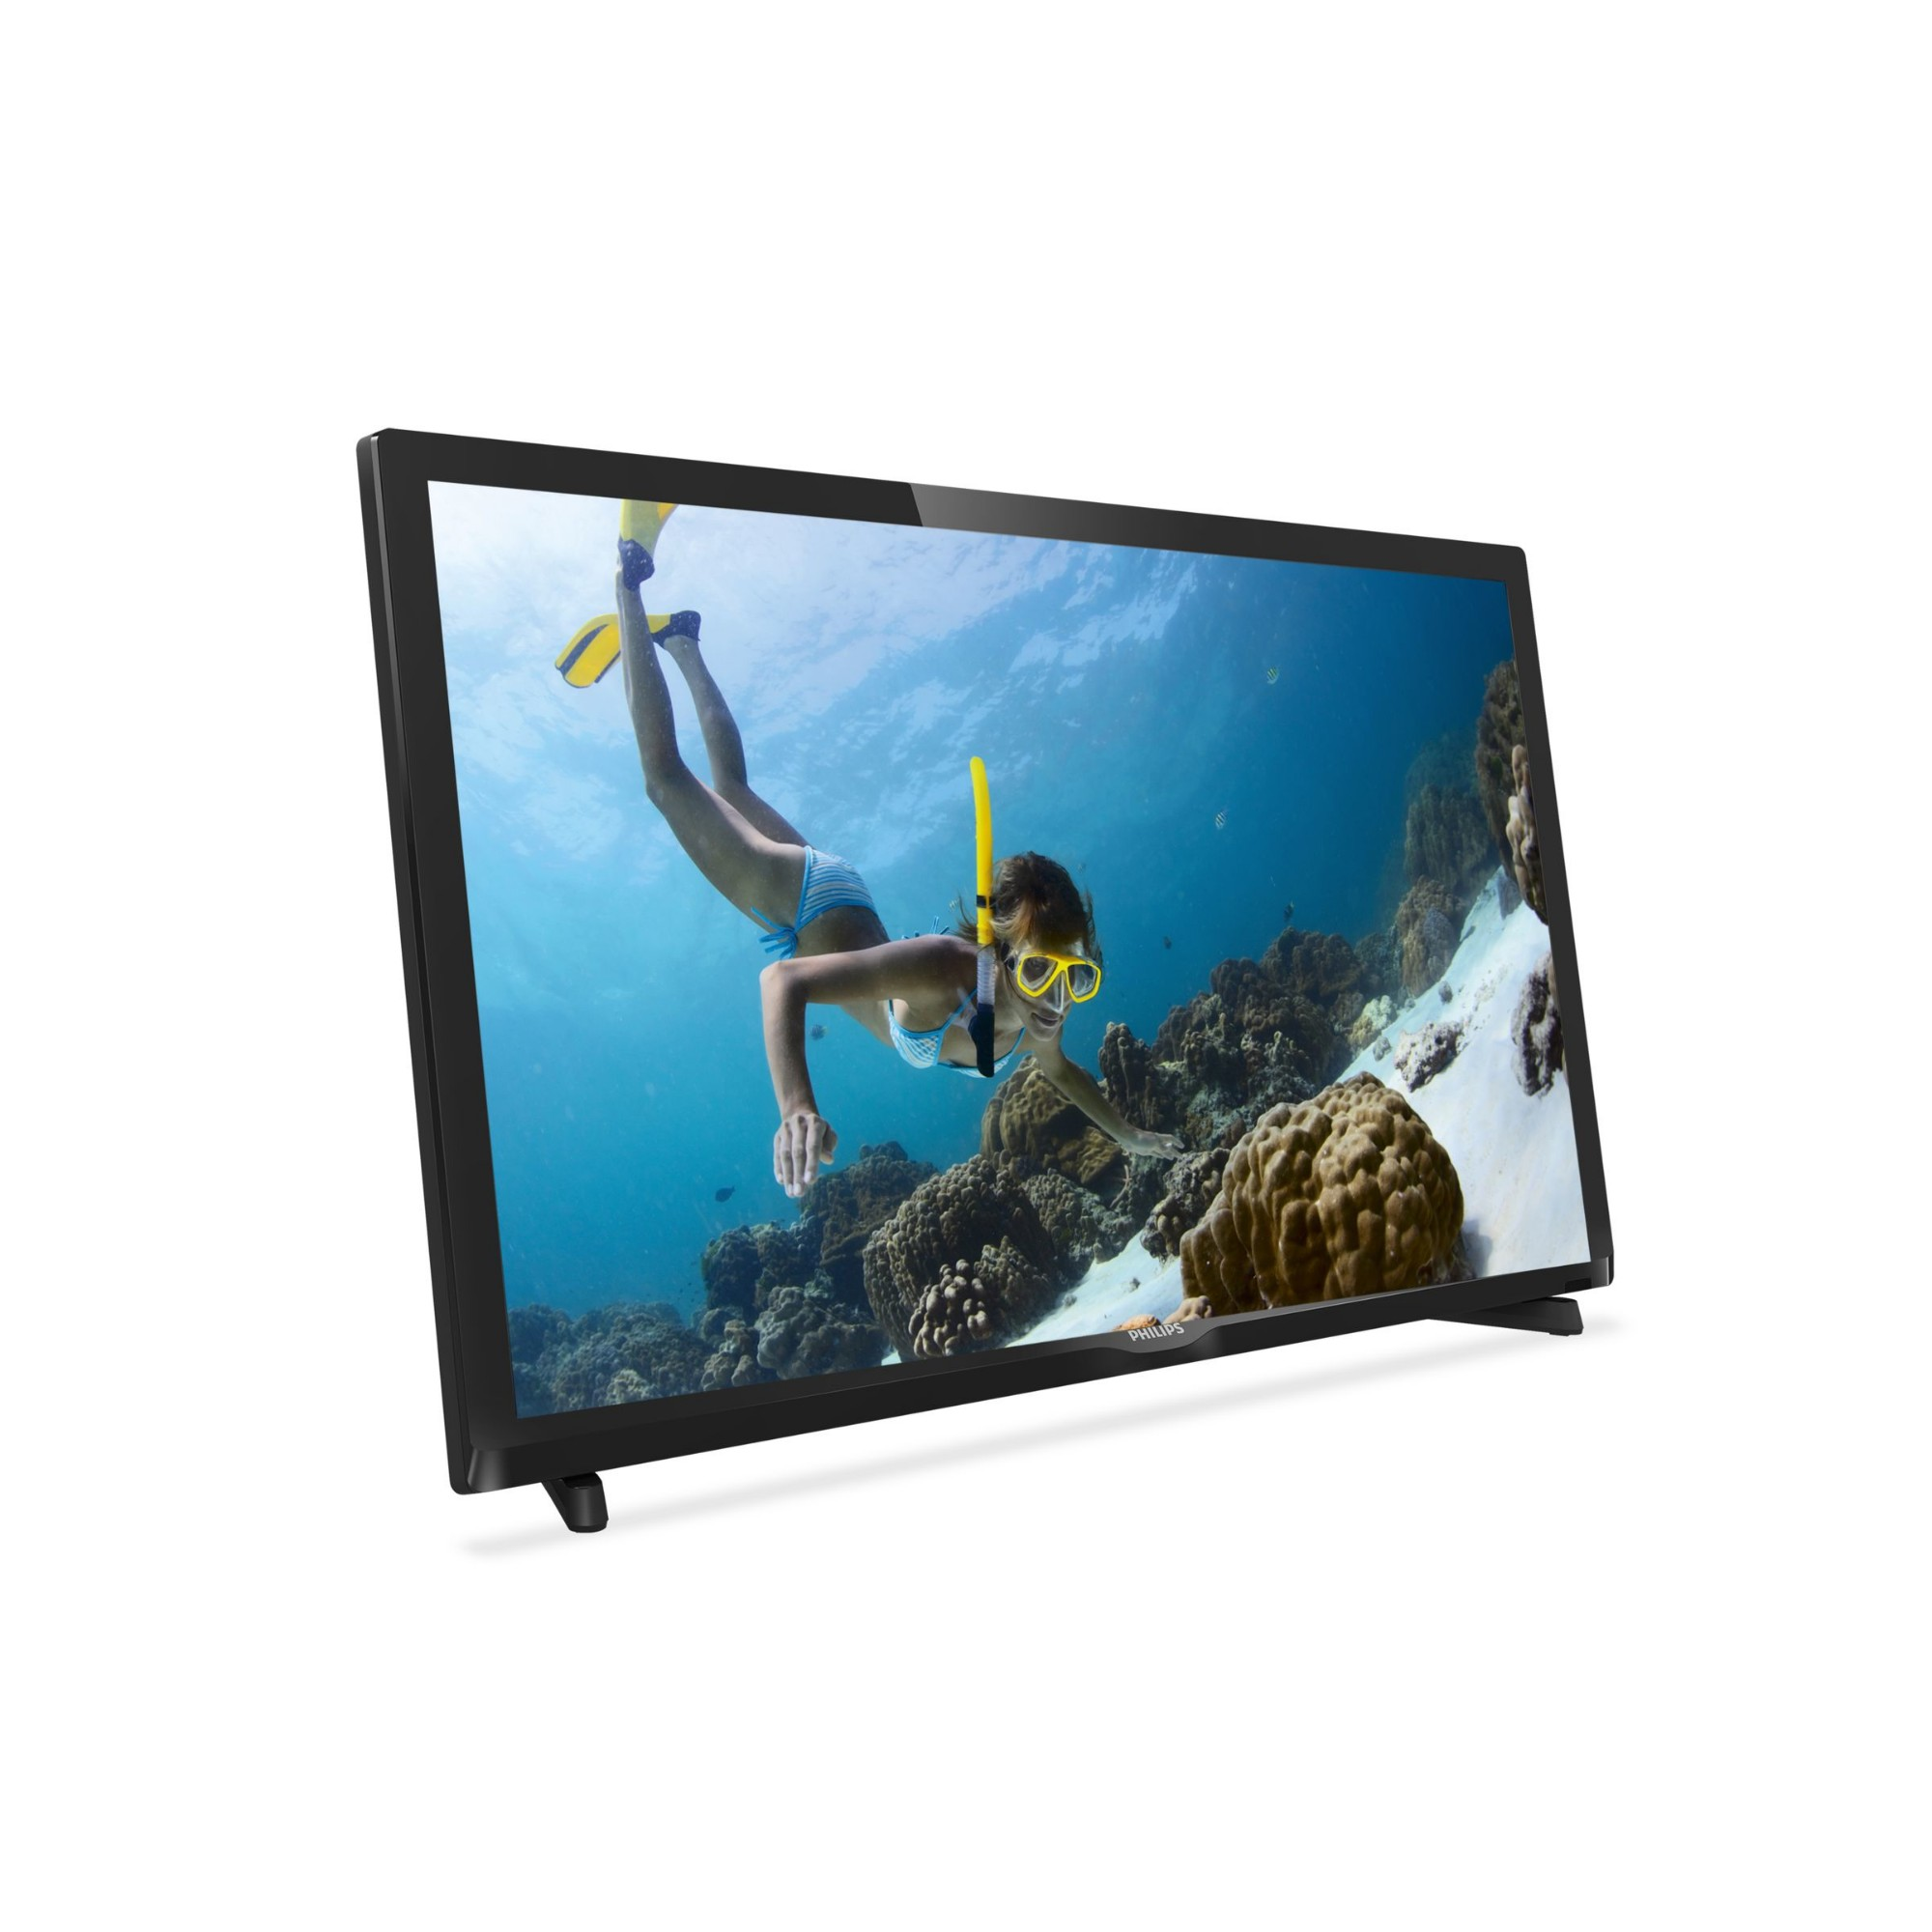 Led Tv 24in 24hfl3011t